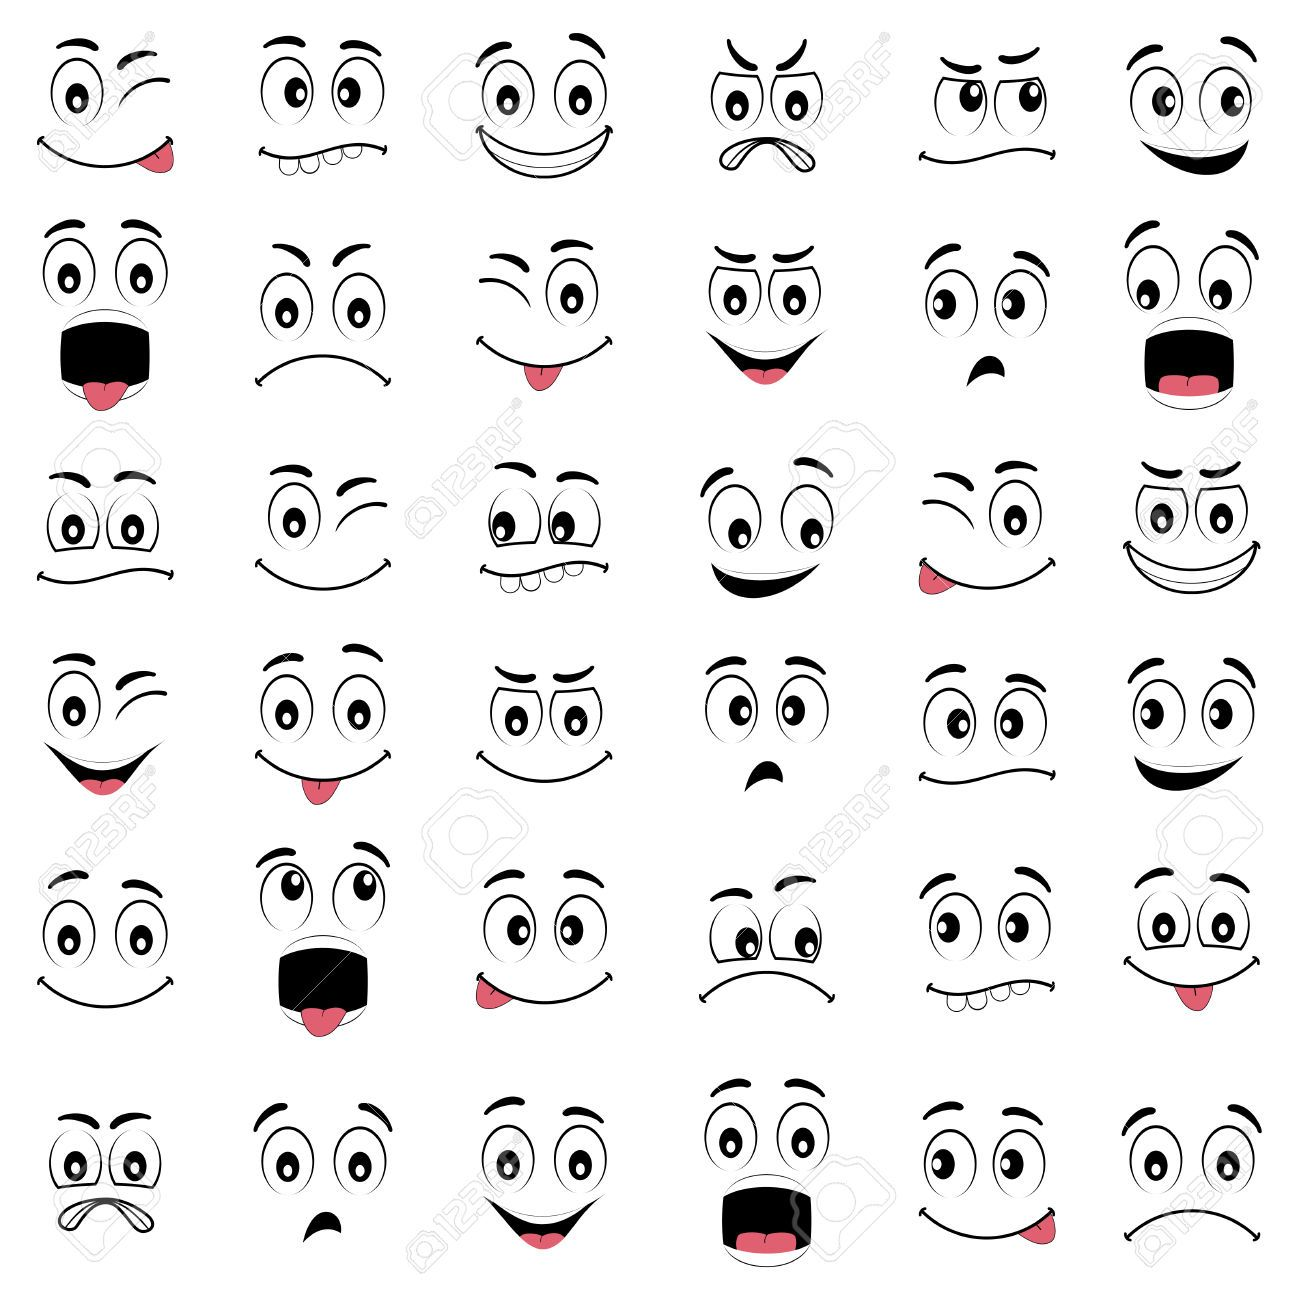 medium resolution of pin by ednor therriault on cartoon eyes cartoon faces cartoon cartoon face diagram